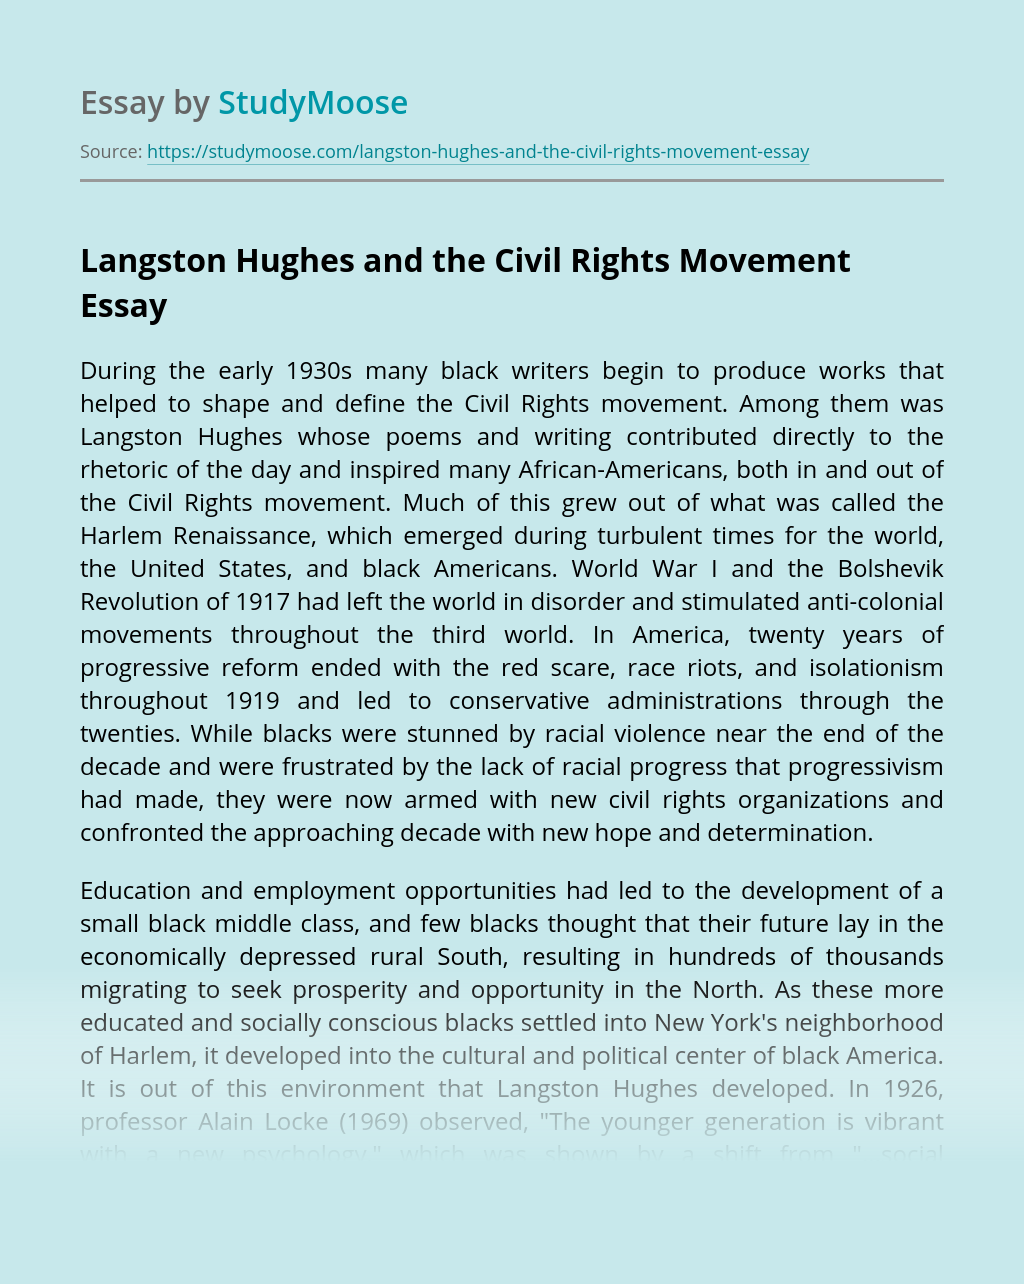 Langston Hughes and the Civil Rights Movement